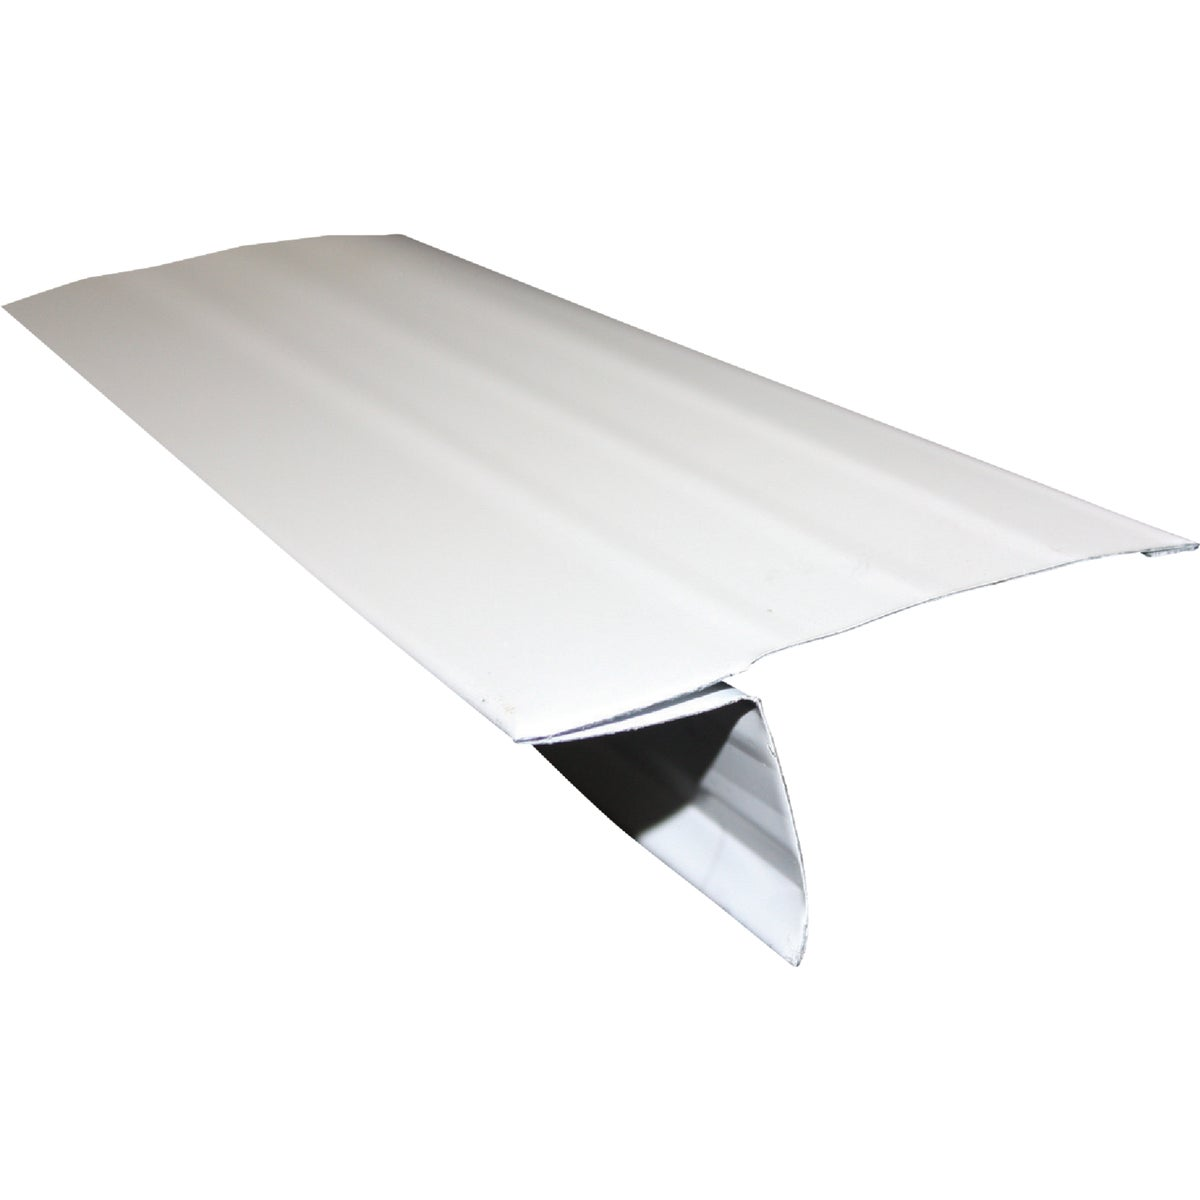 "5""STYLE D GALV ROOF EDGE - 32415-GV10 by Klauer Mfg Co"